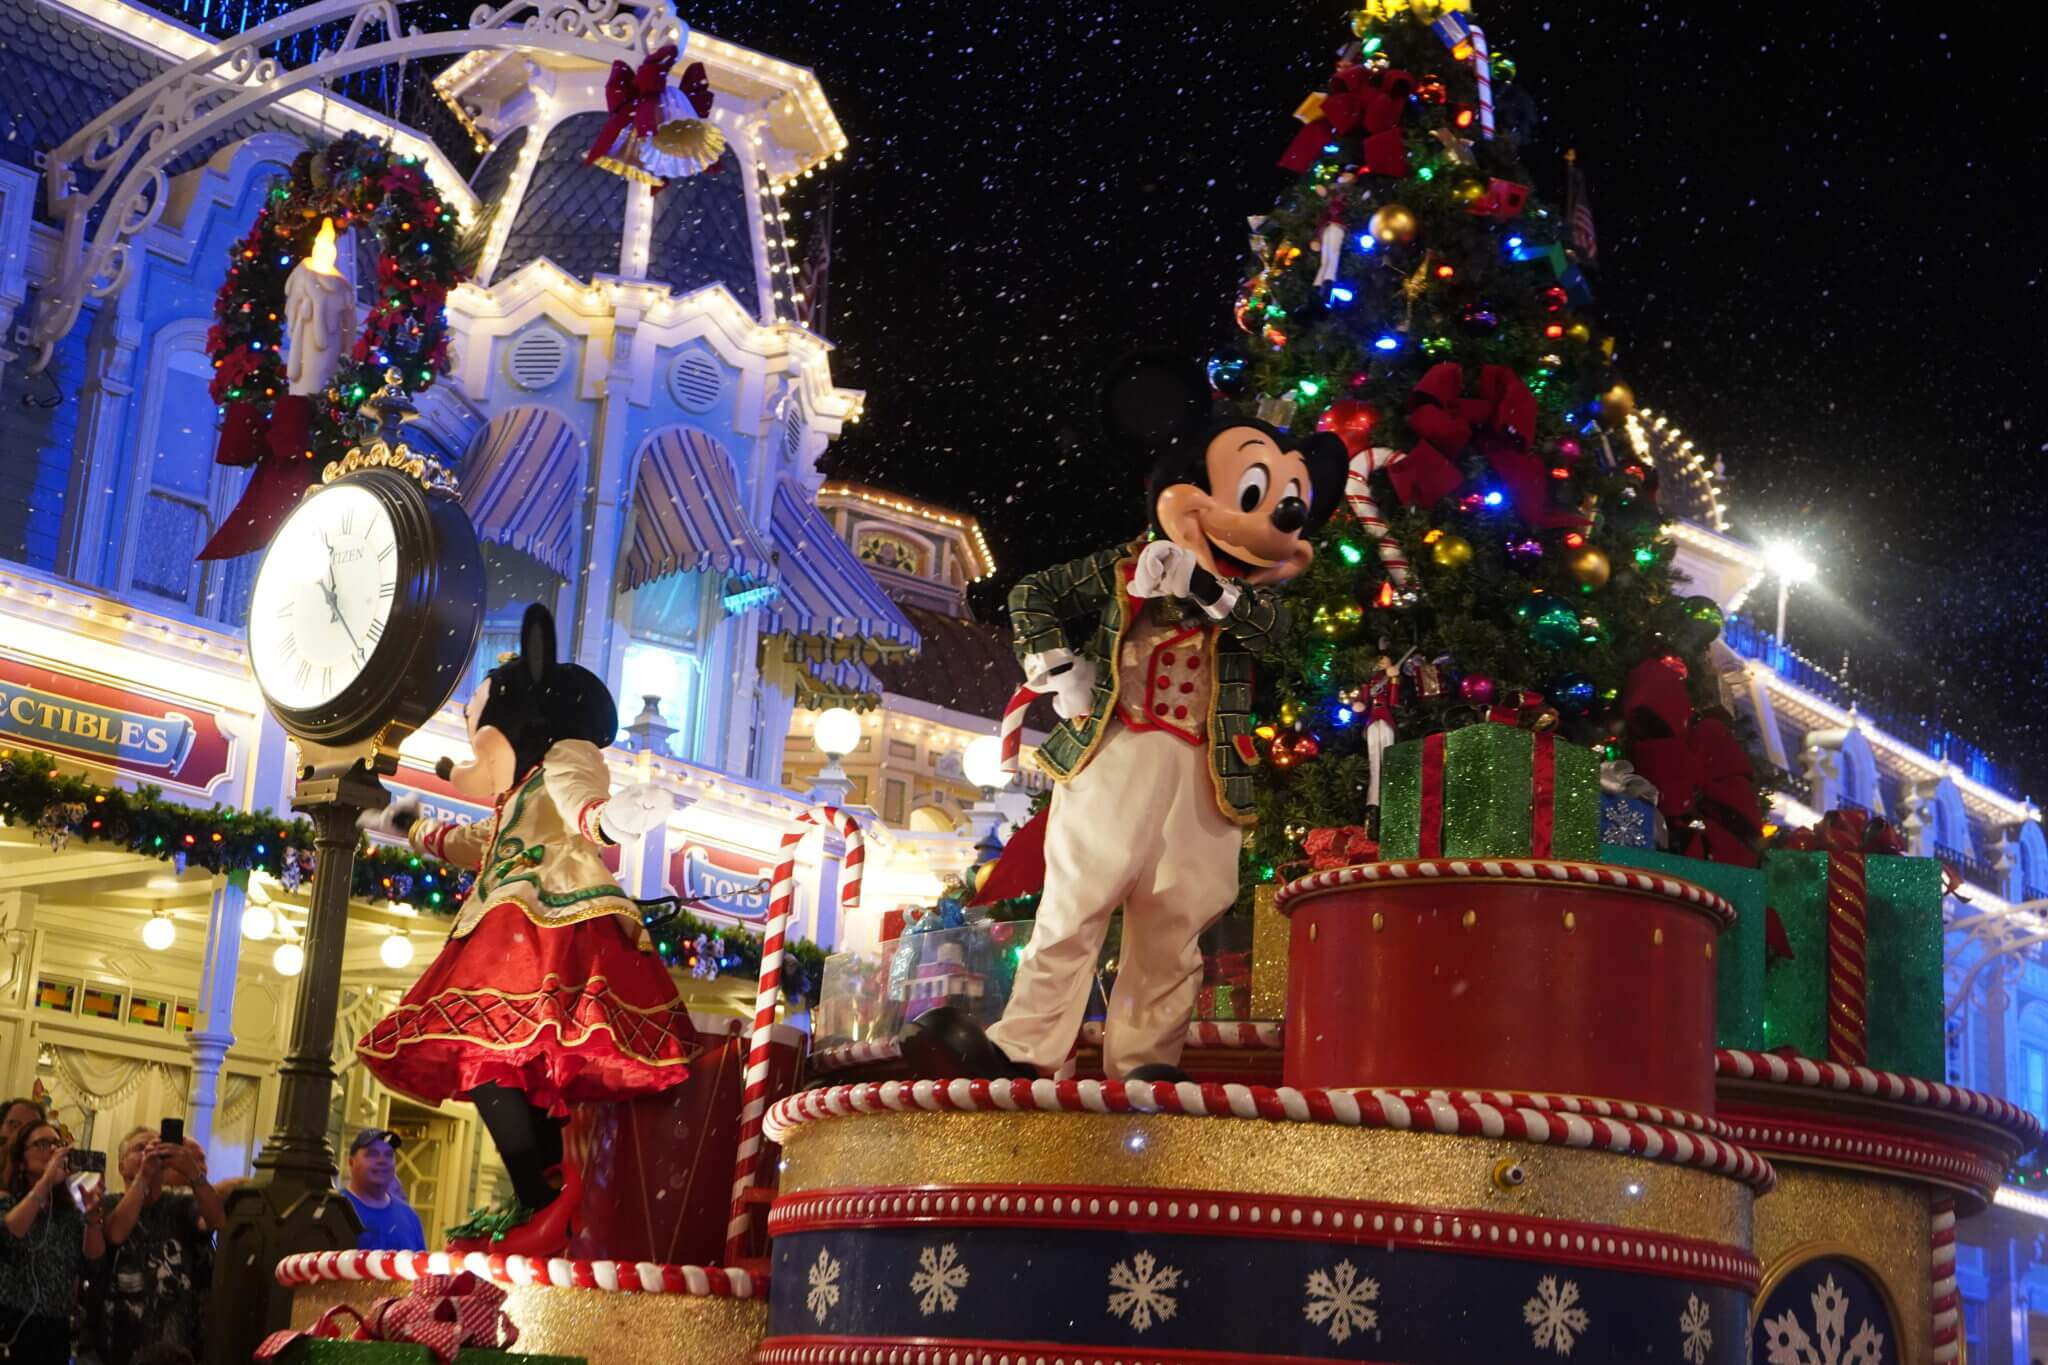 Mickey and Minnie Snow and Christmas Tree and Mickey Wreath on Main Street USA in Disney World